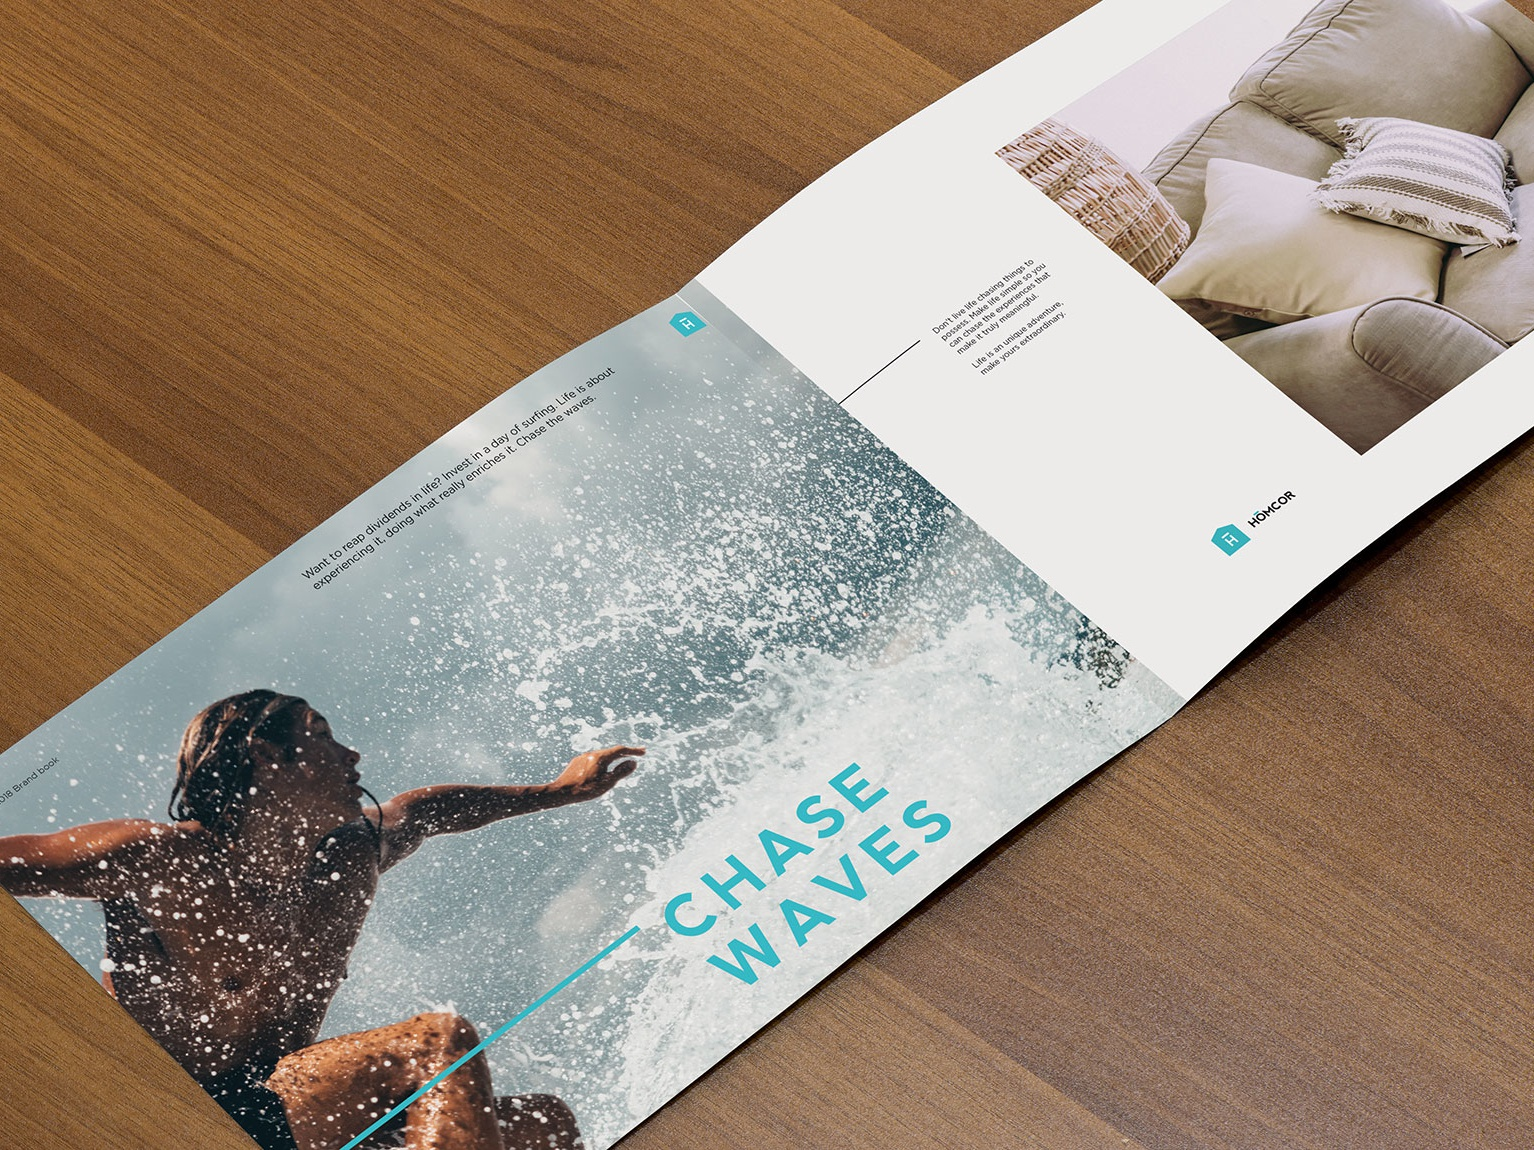 Homcor Catalog 3 beach life industrial home home goods sofas sofa brochure design brochure catalog design catalog action sports water waves ocean beach surfing surf